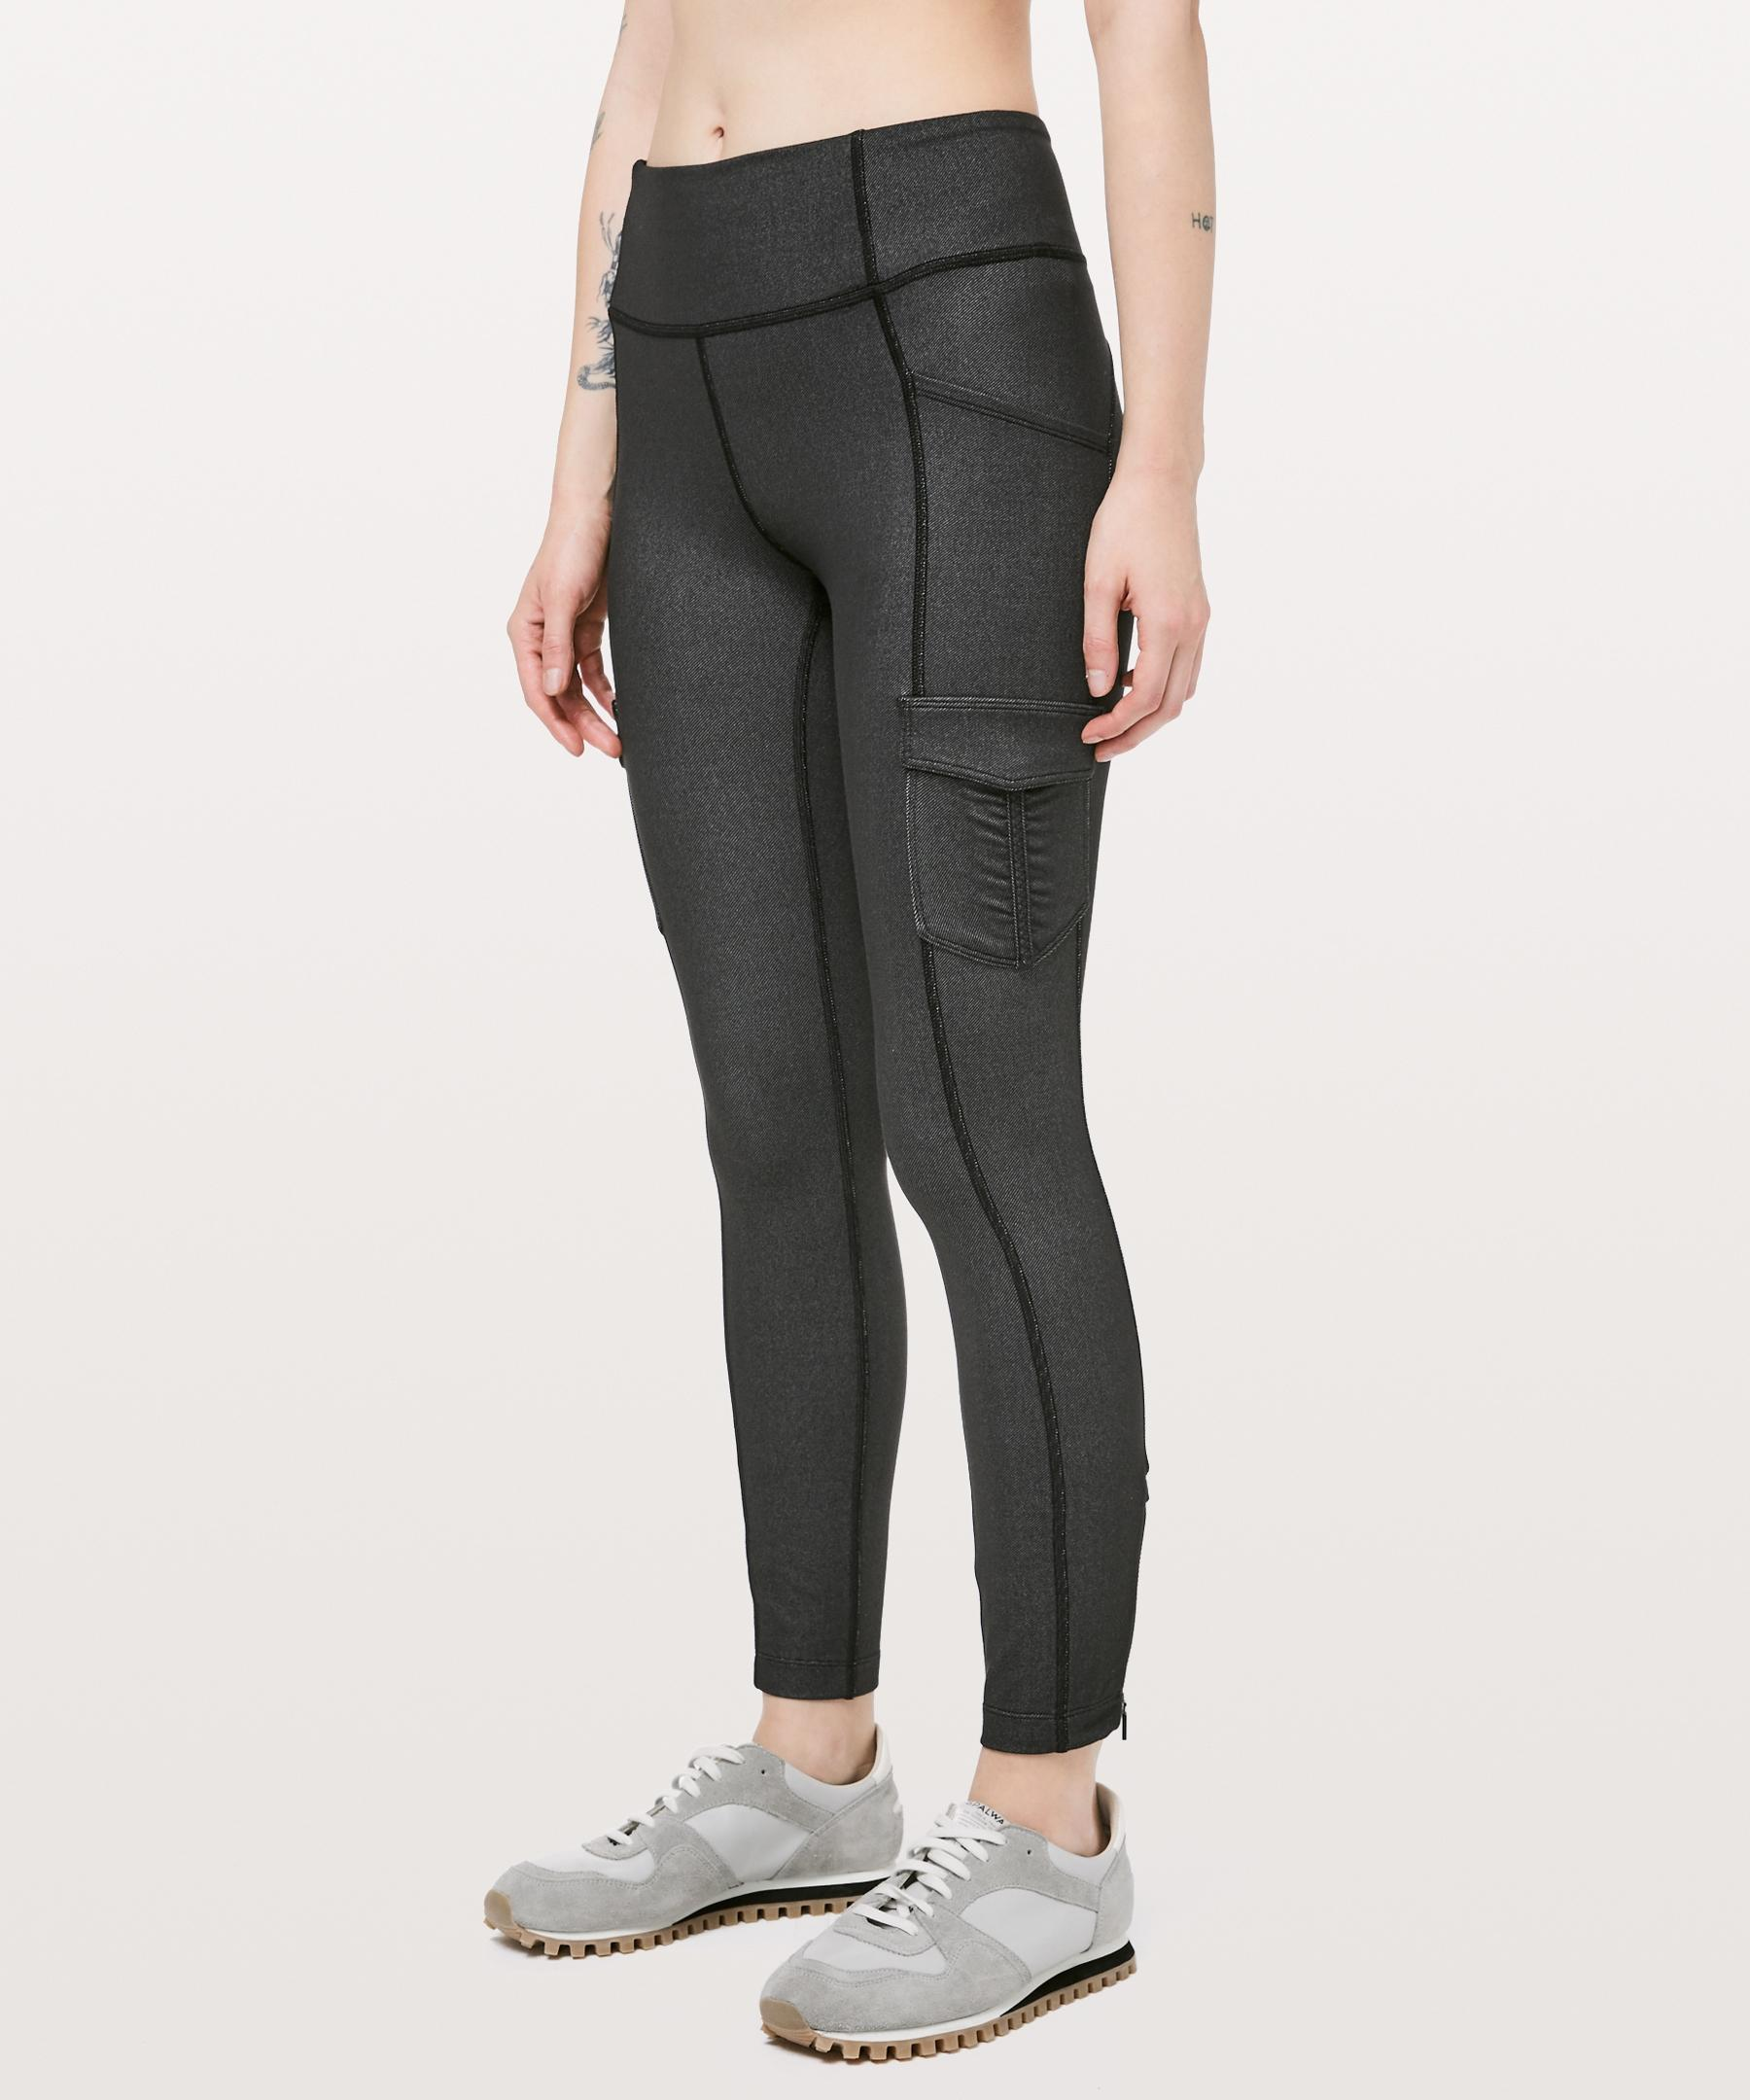 d8d32f85dbc43 lululemon athletica Scenic Route 7/8 Tight *25